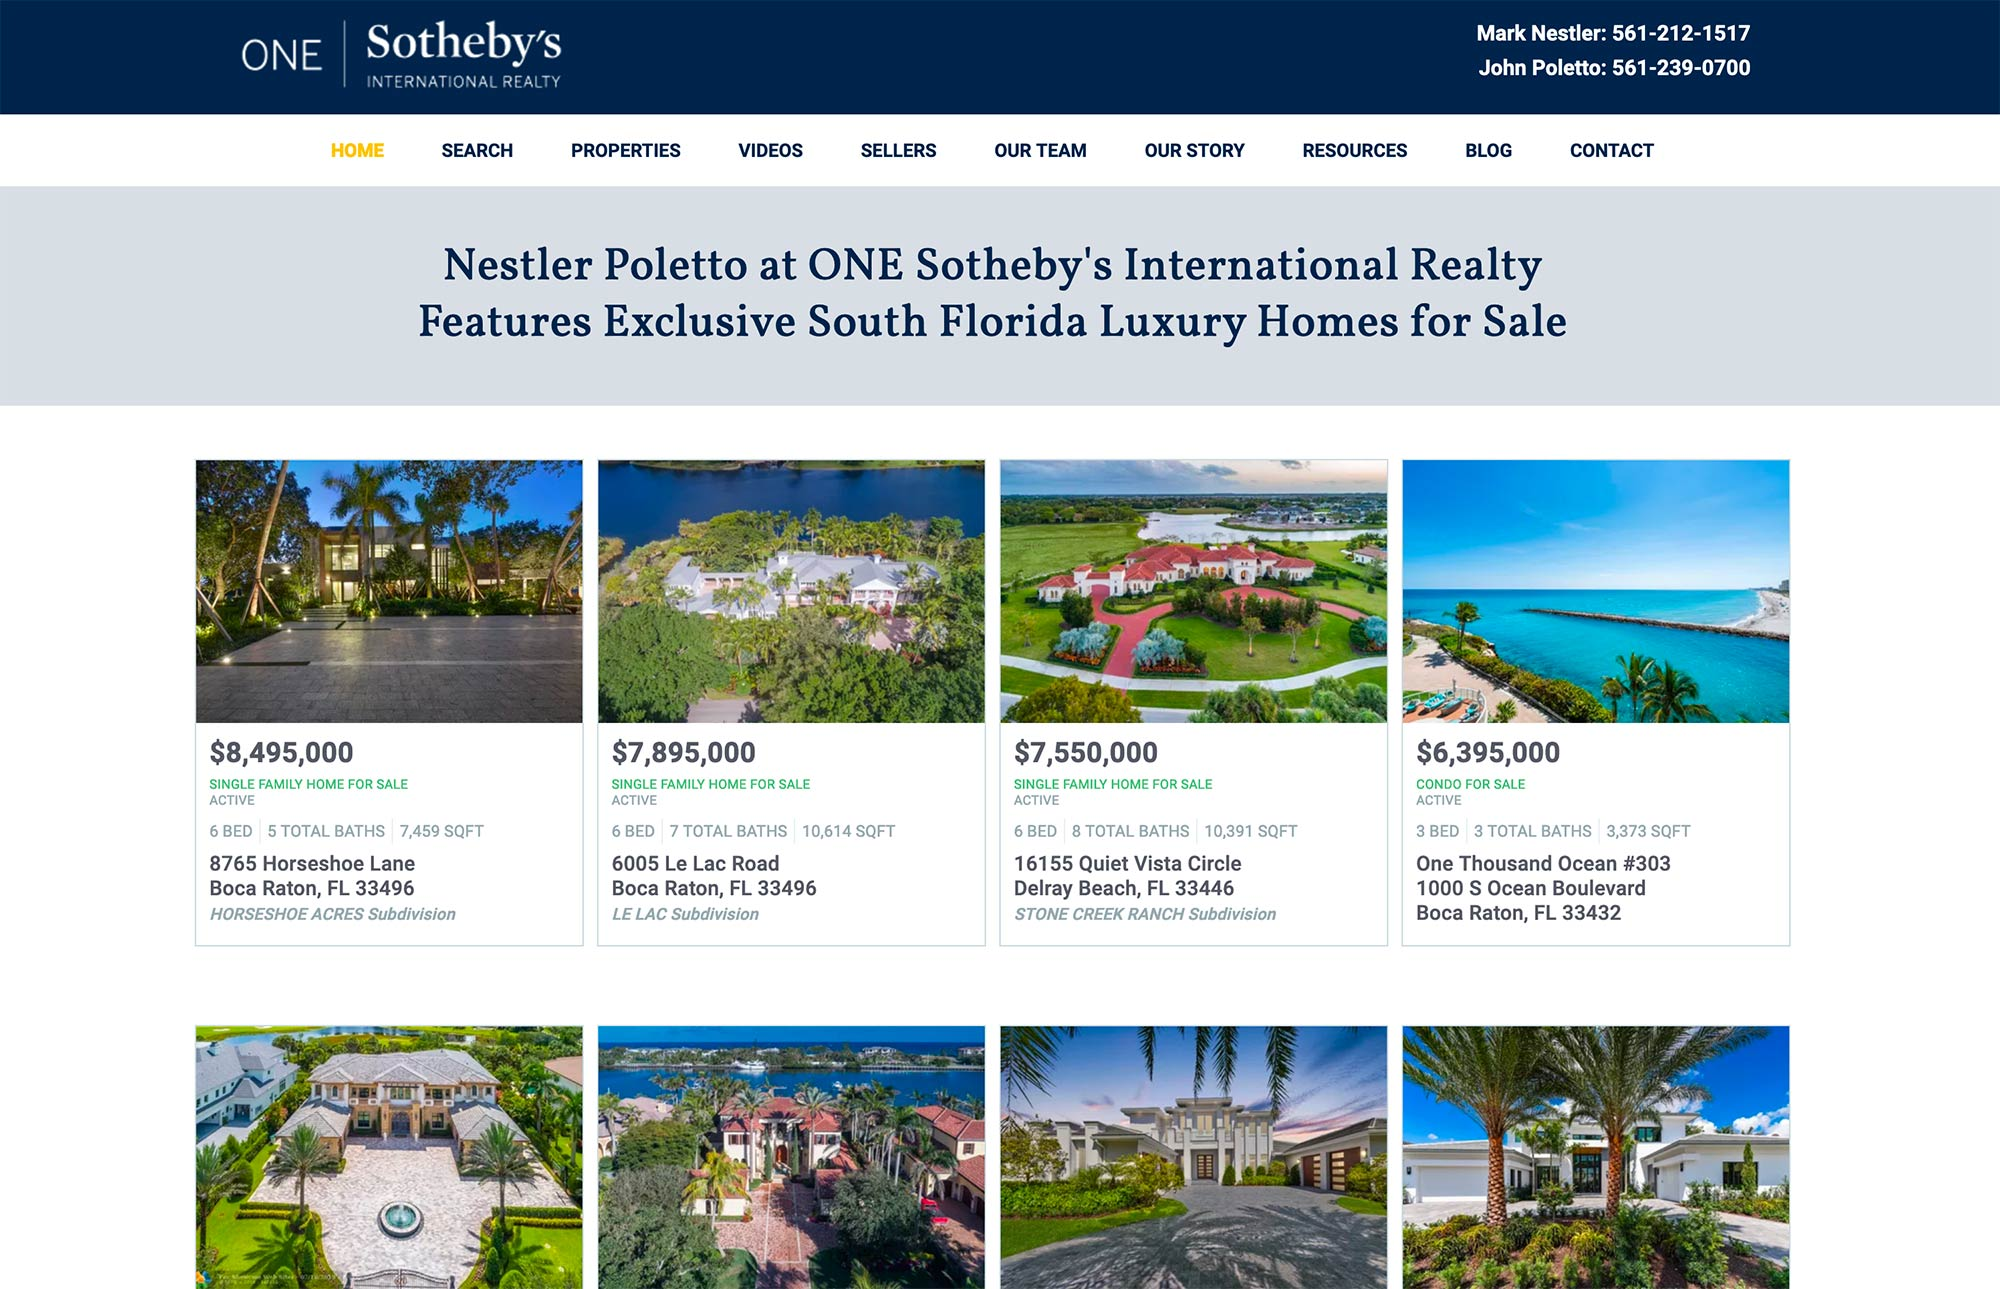 One Sotheby's Real Estate